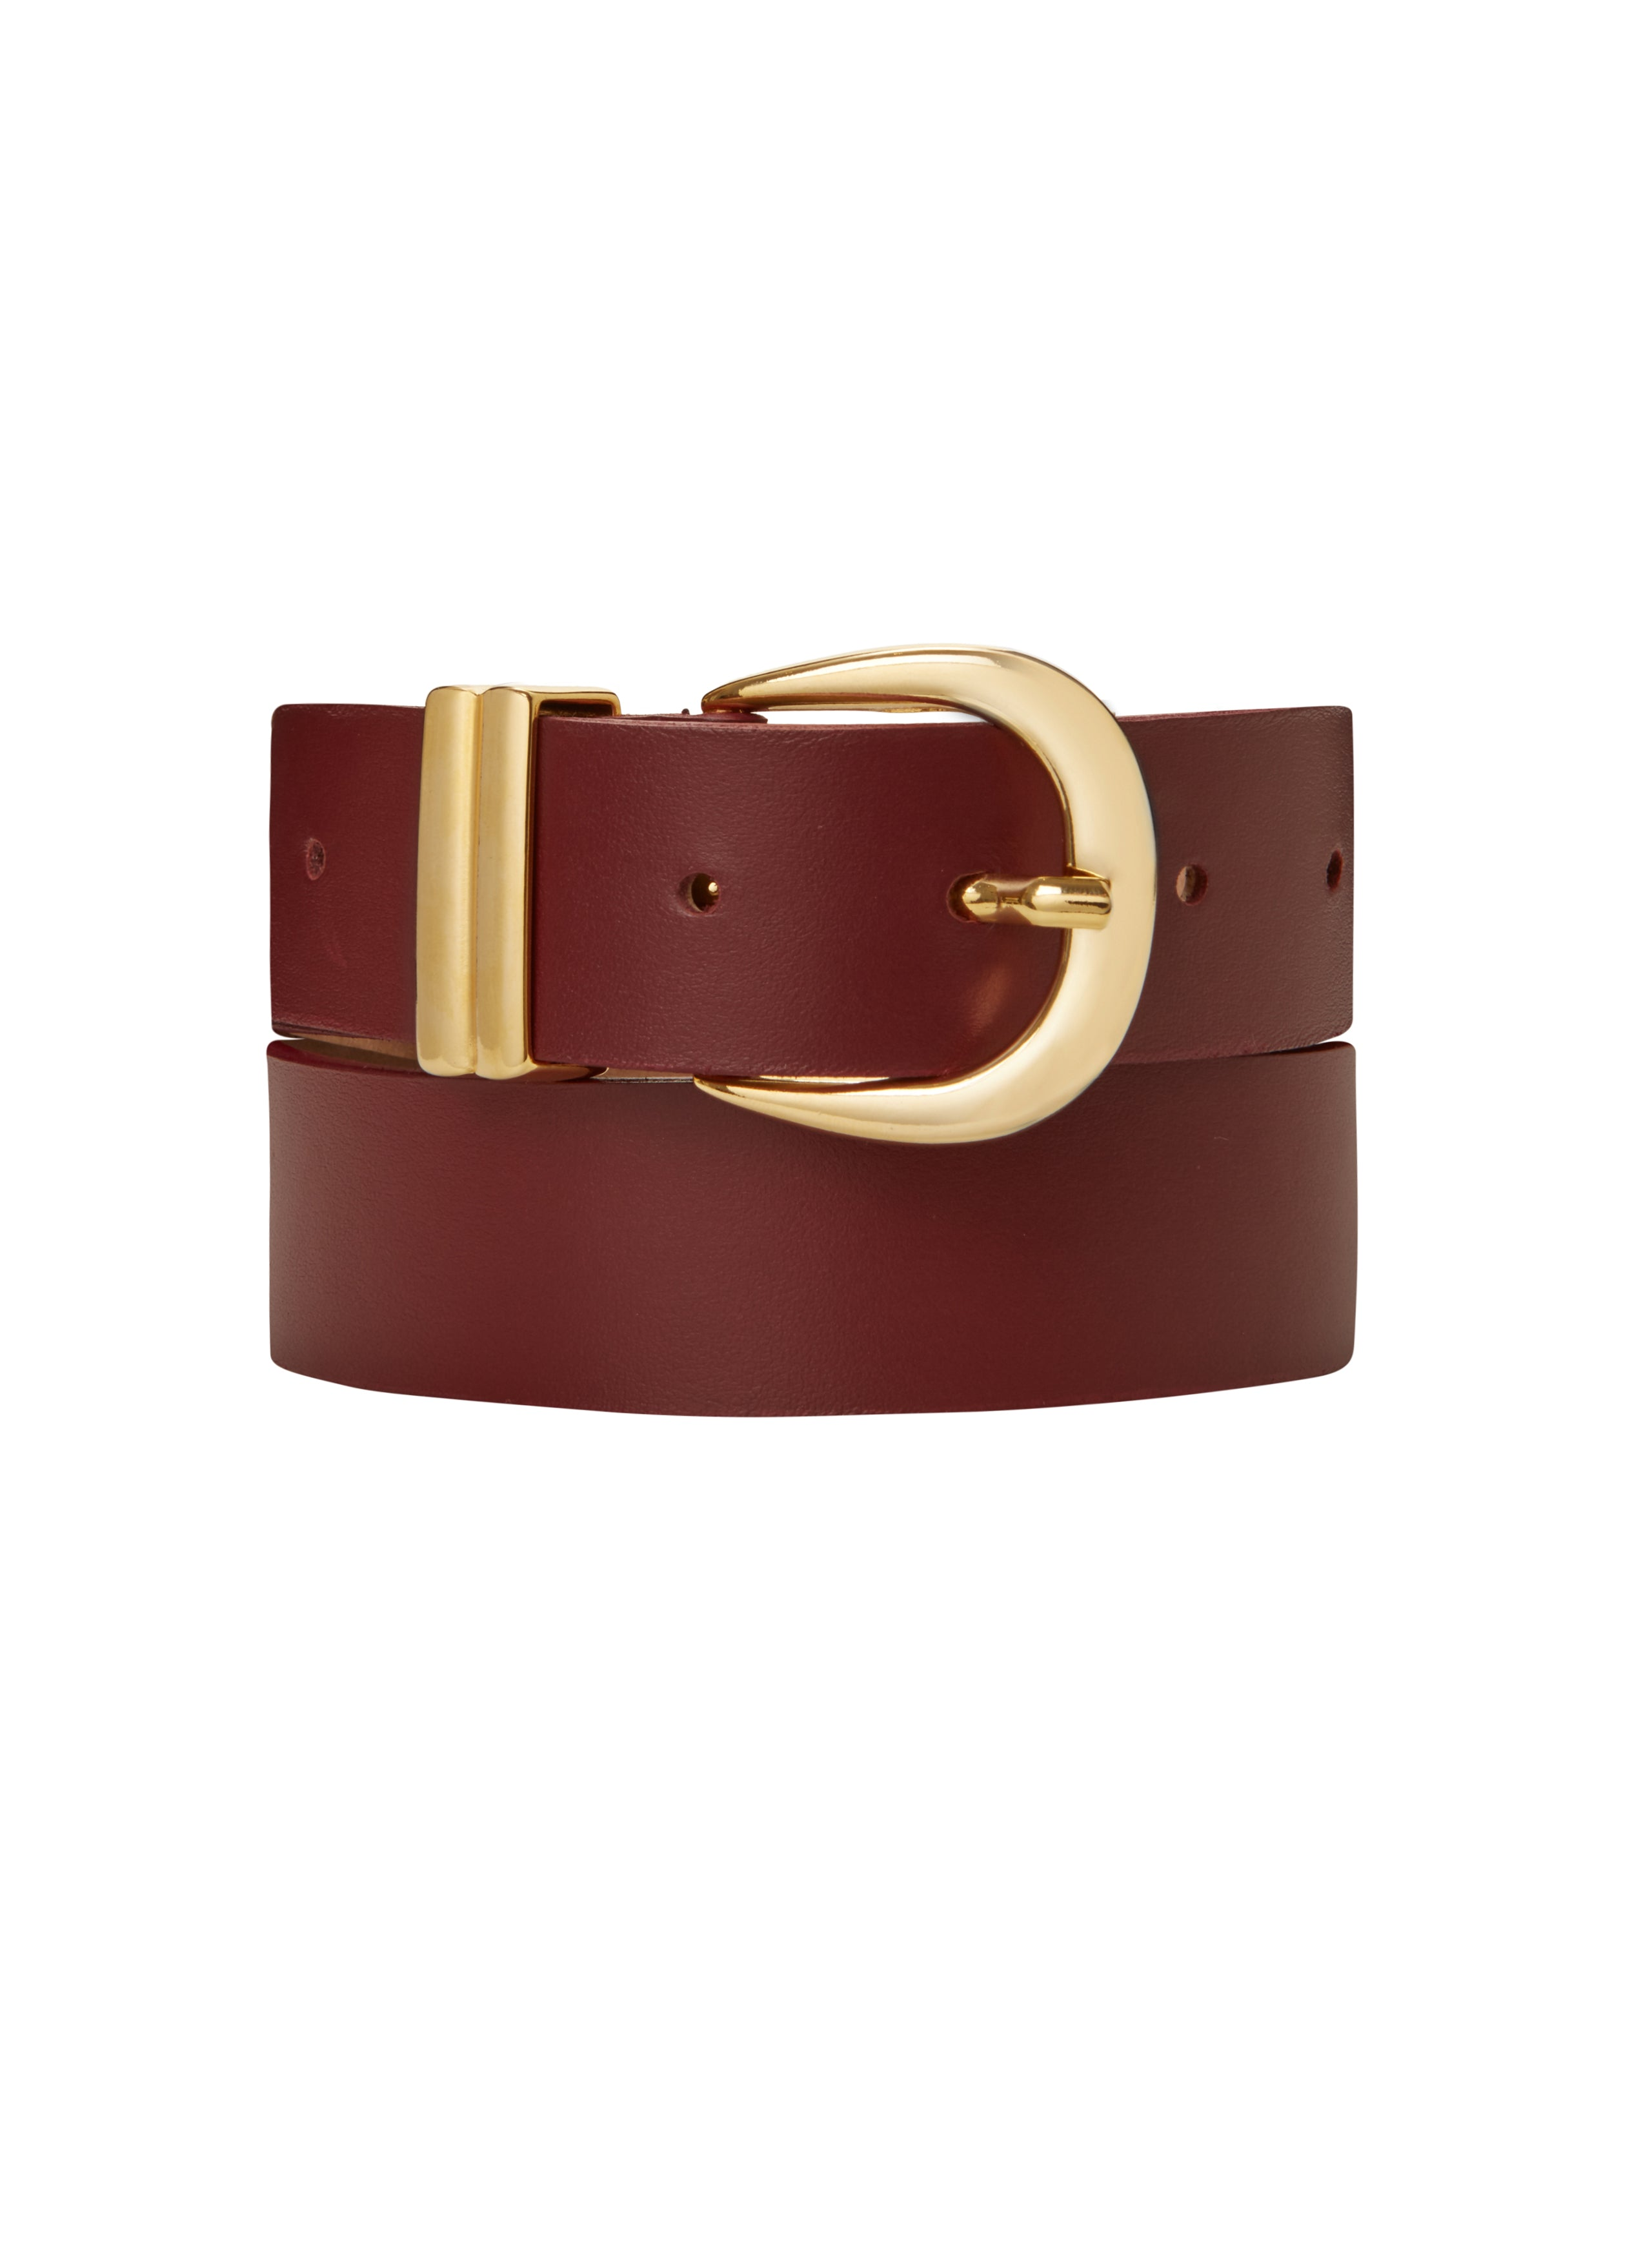 Baukjen Signature Belt Gold Buckle